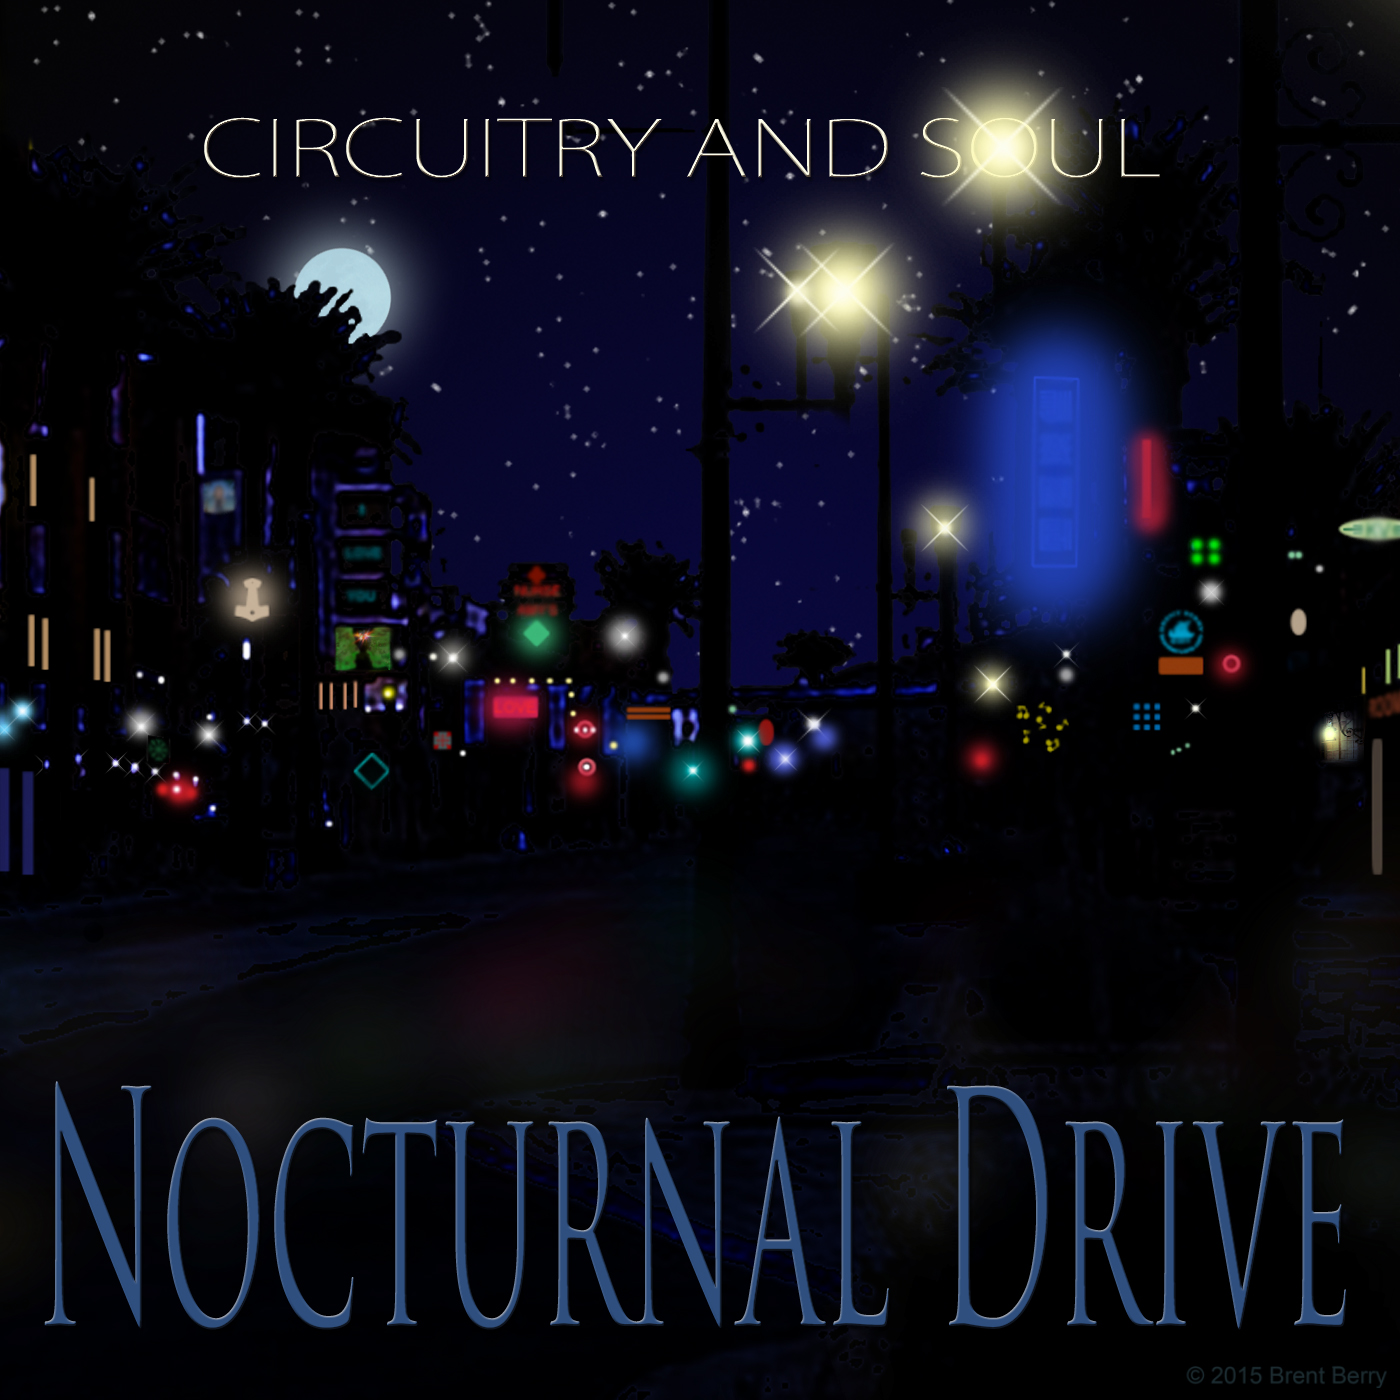 Nocturnal Drive